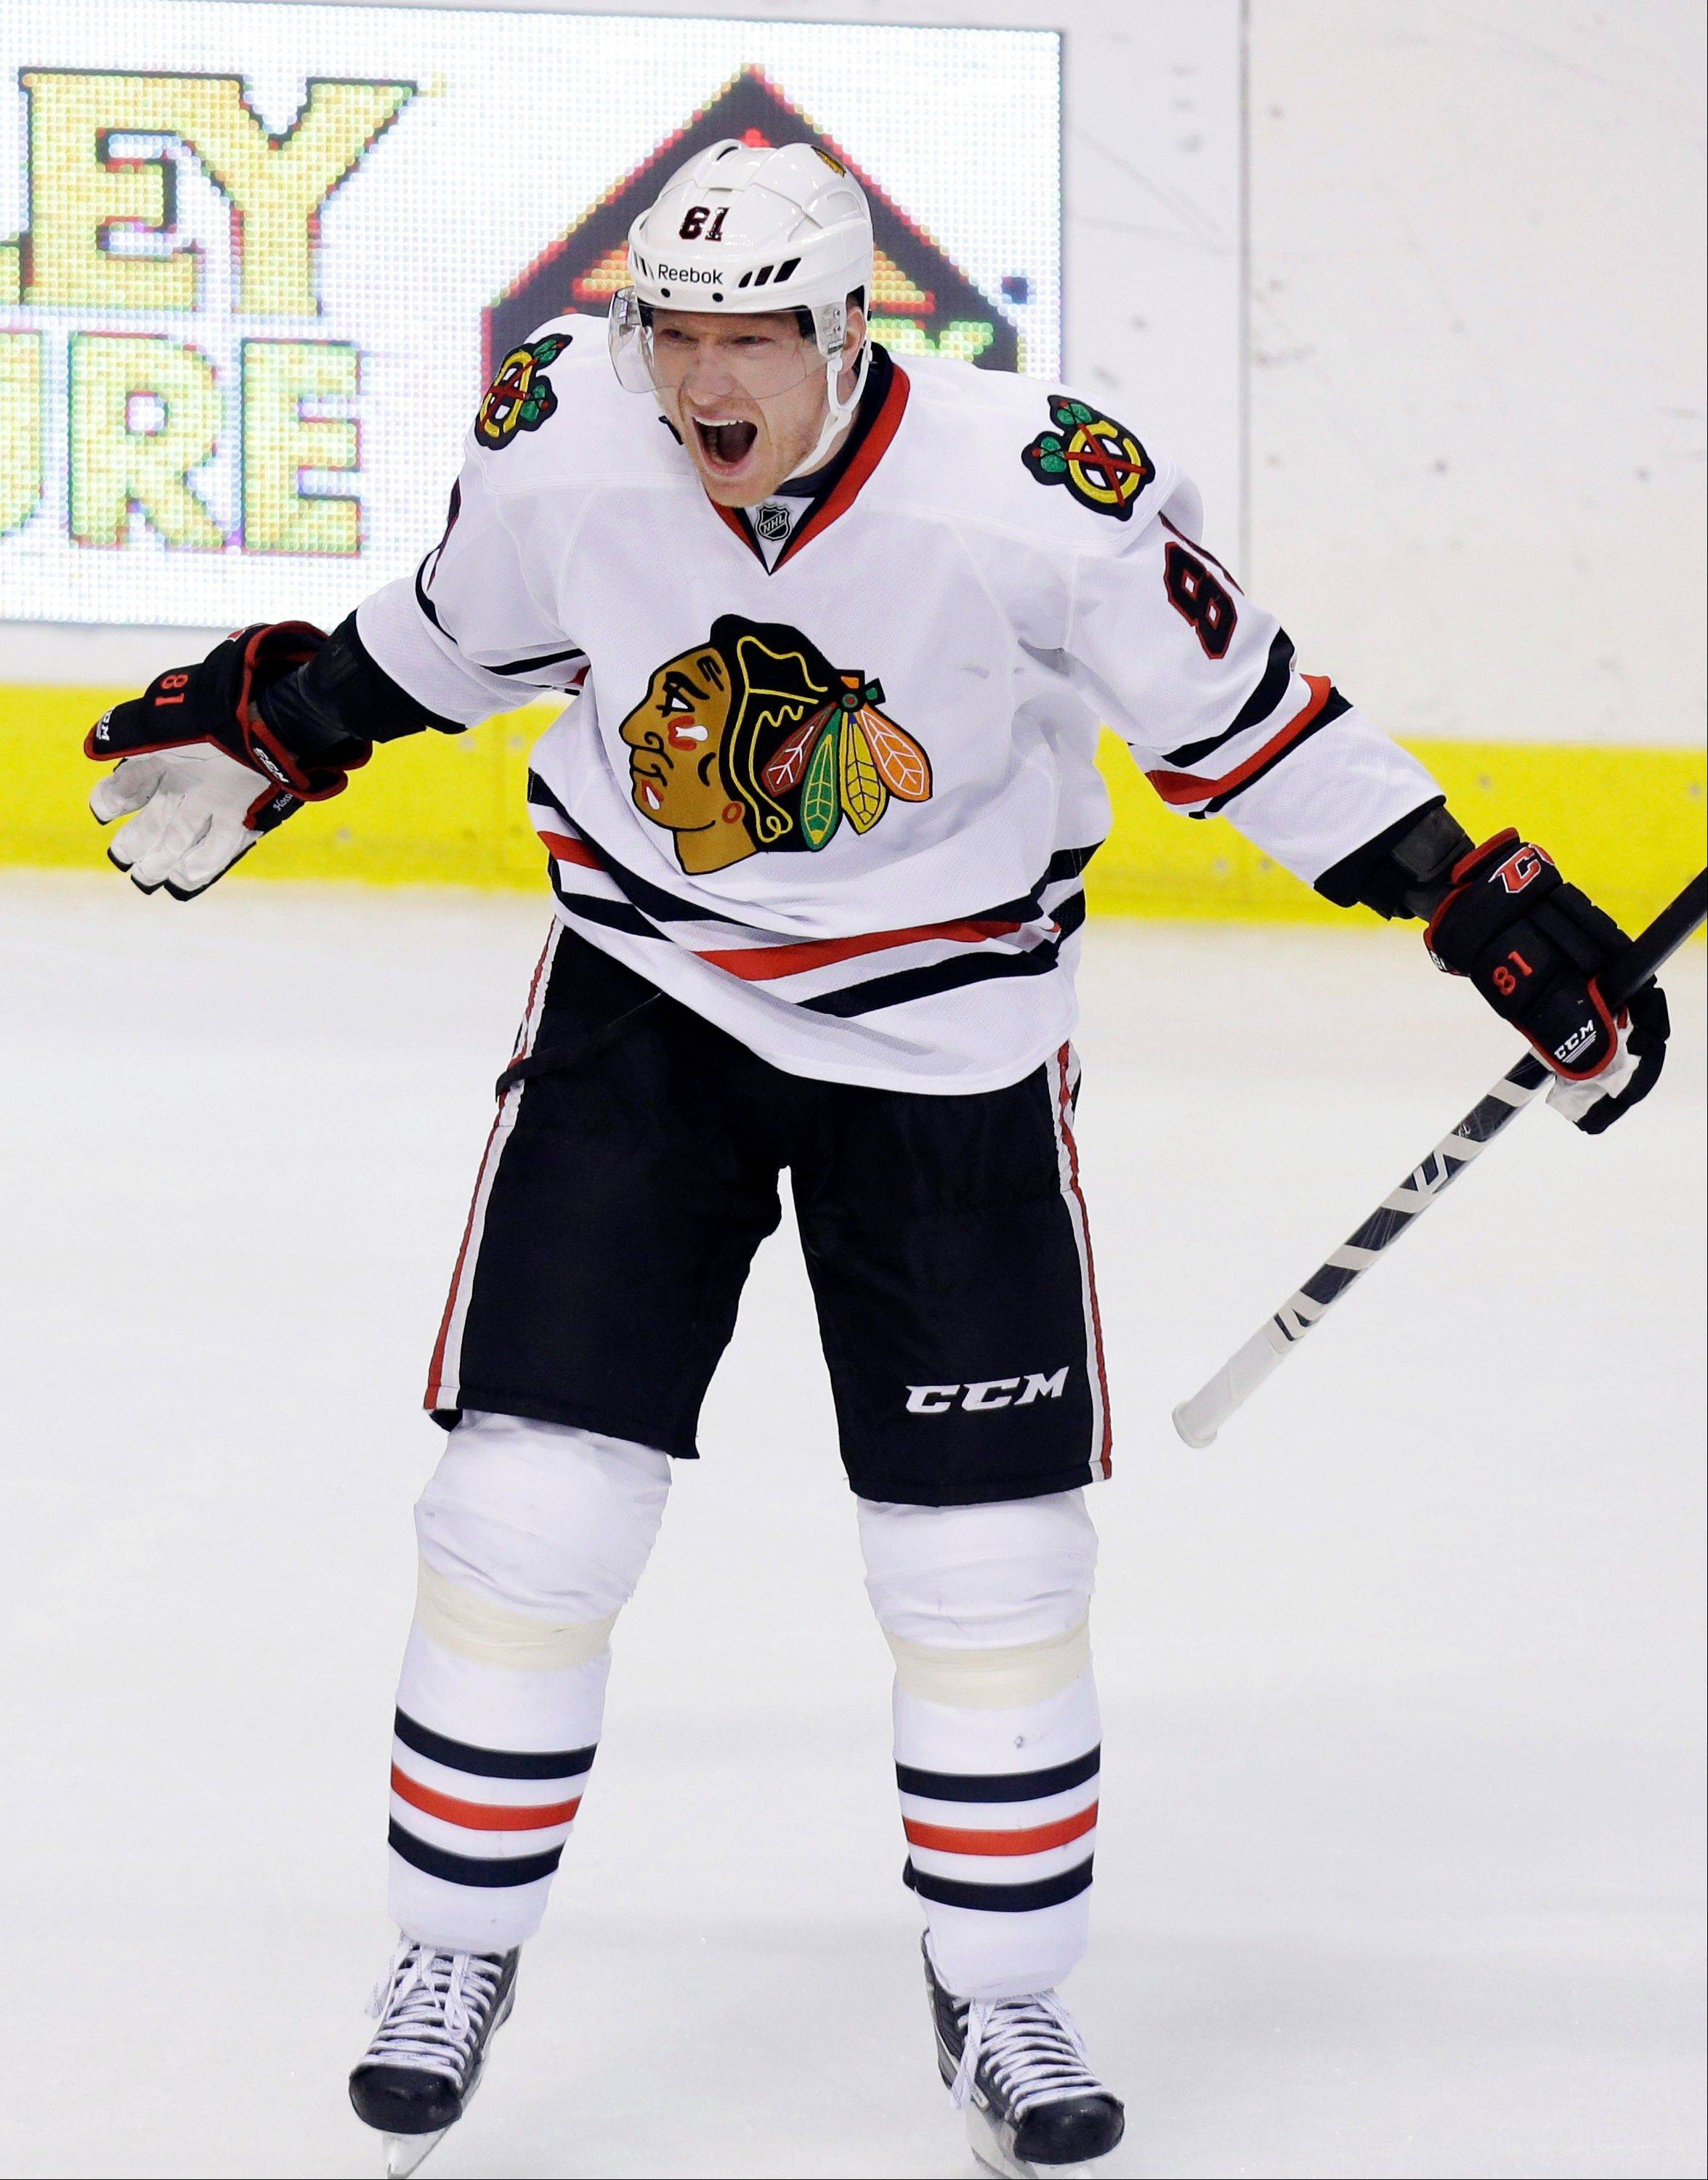 Chicago Blackhawks right wing Marian Hossa (81) of Slovakia celebrates scoring a goal during the Hawks� win against the Stars Saturday night in Dallas.